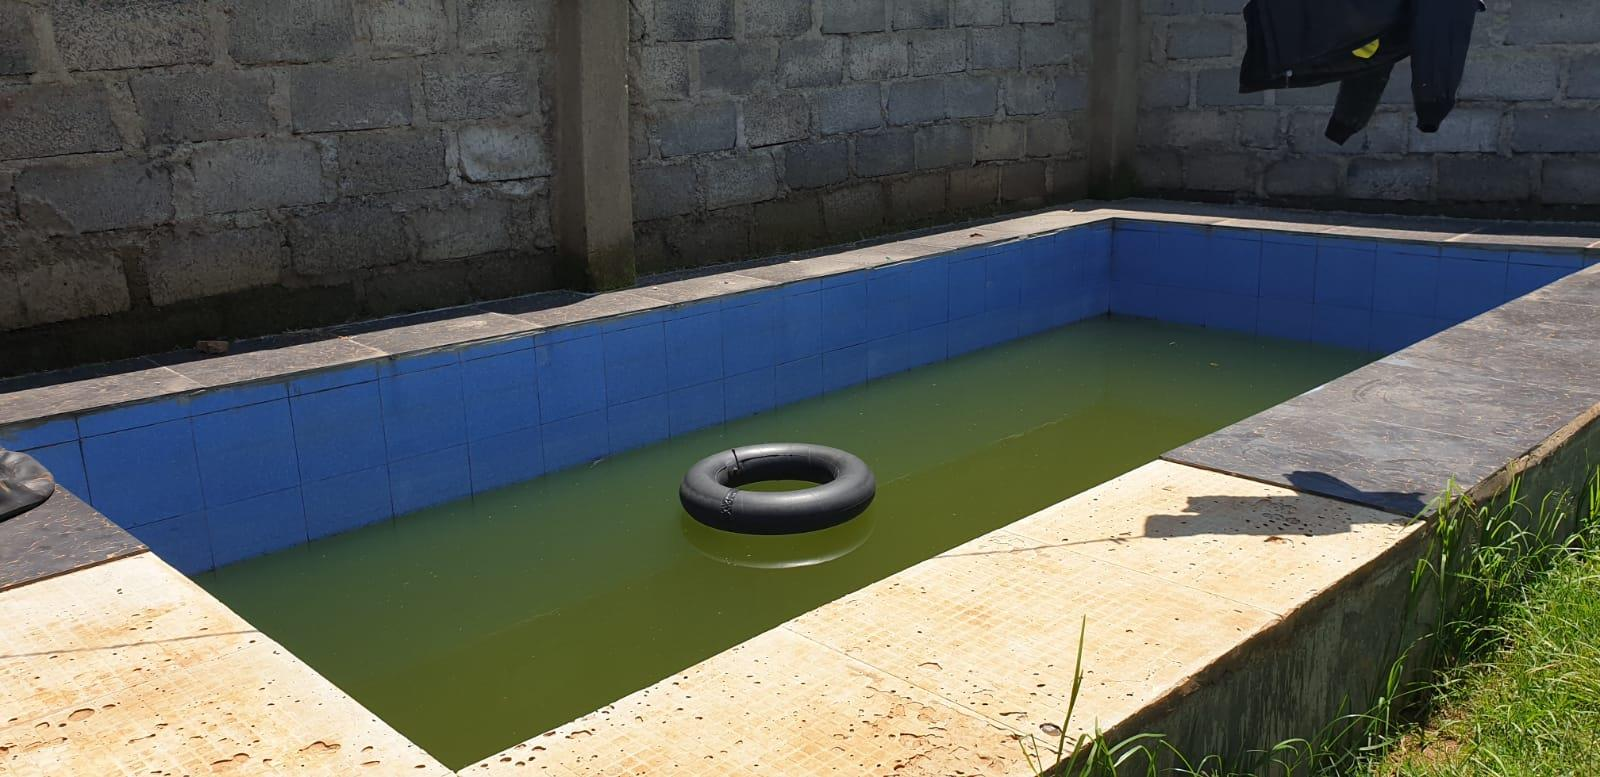 Conseslus Kipruto's self-built pool